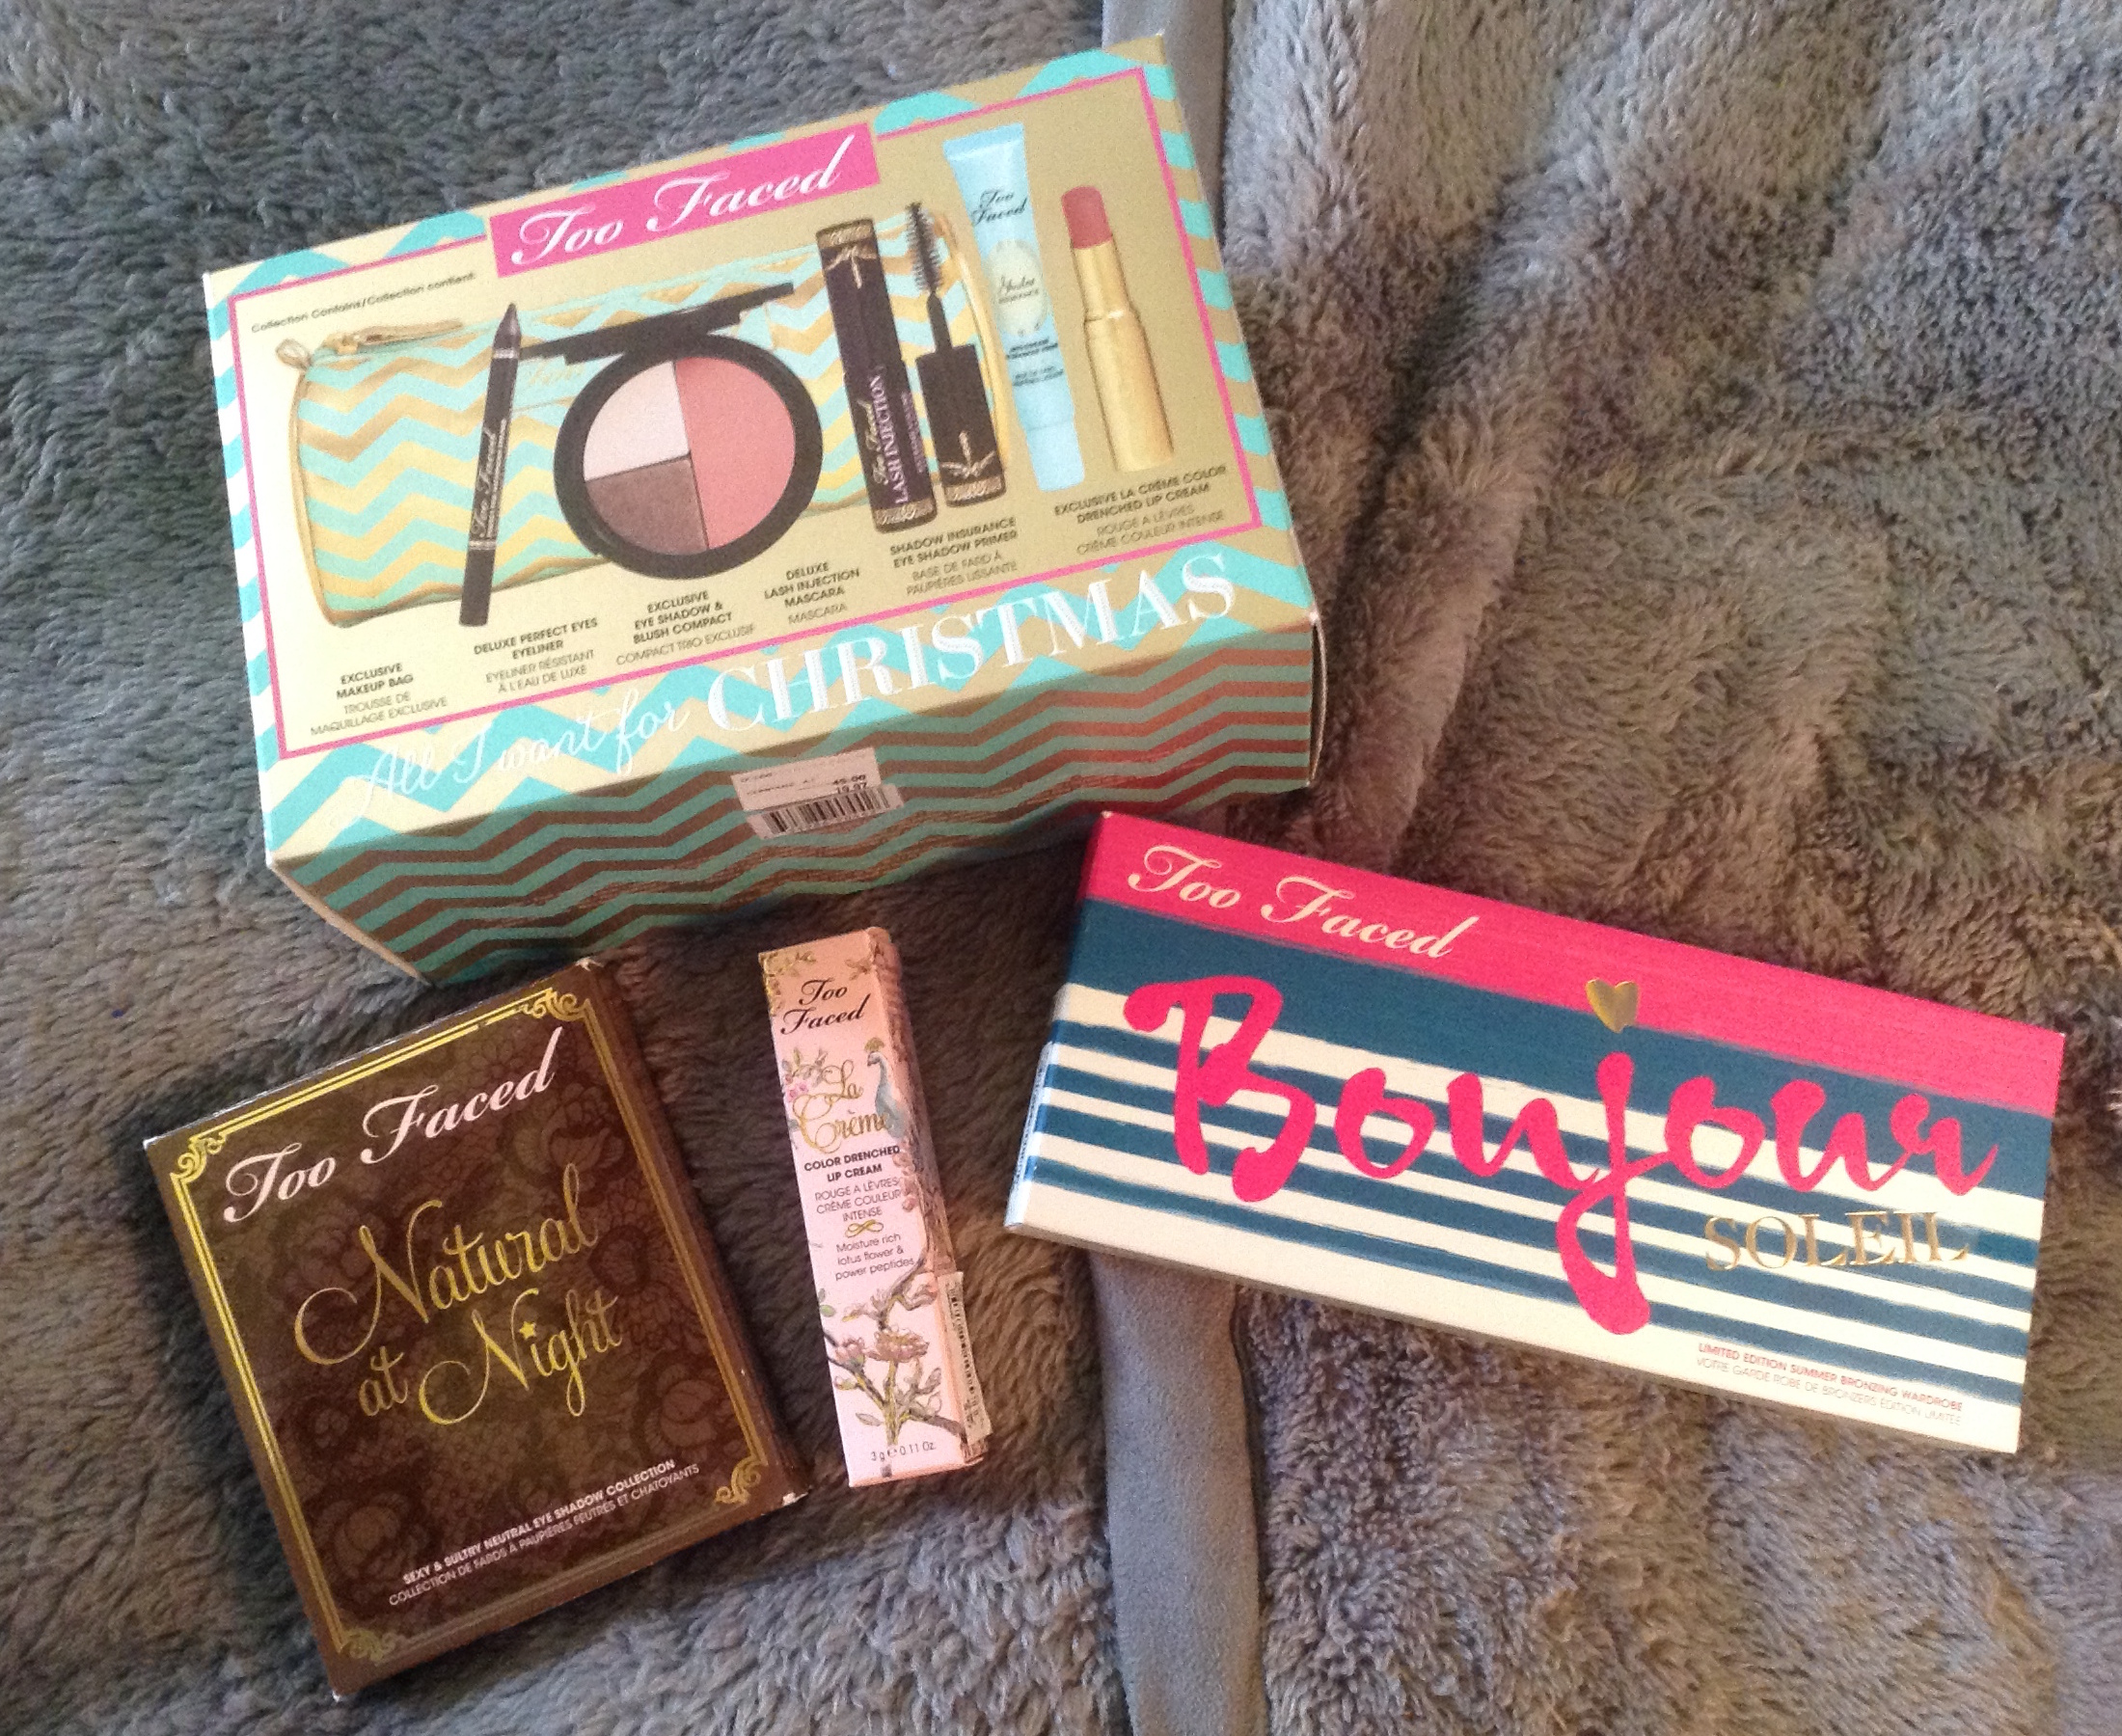 Everything That I Got At Nordstrom Rack Yesterday Were Too Faced Products And Let Me Tell You The Deals Great These Are Decided To